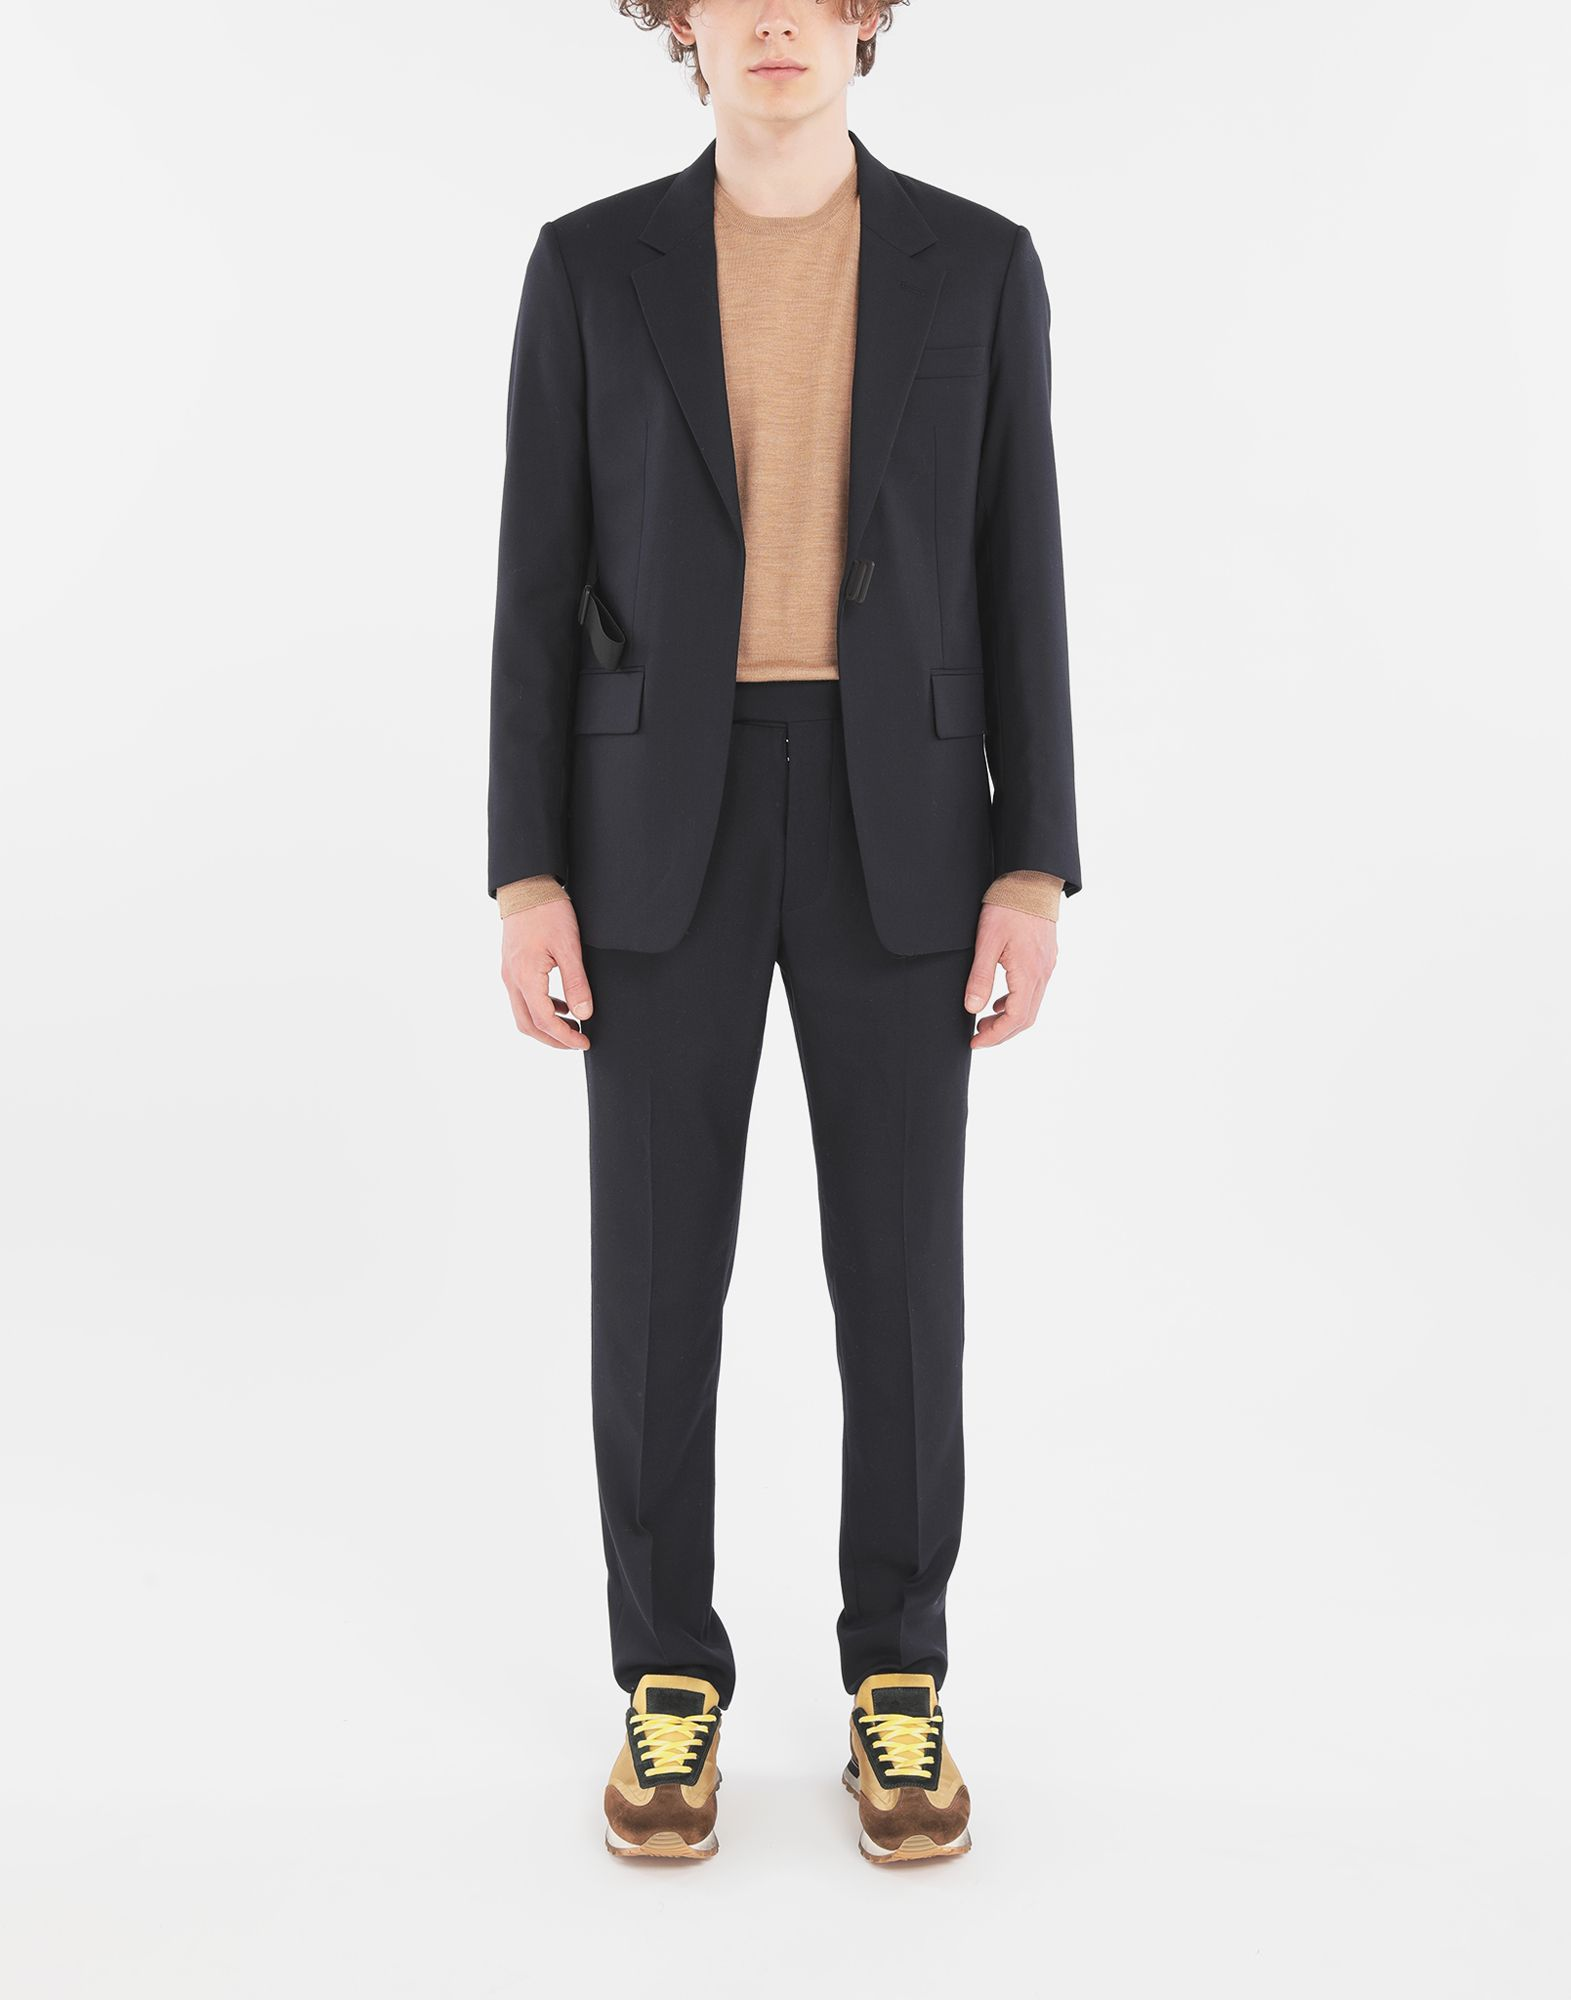 MAISON MARGIELA Side-strap trousers Trousers Man d